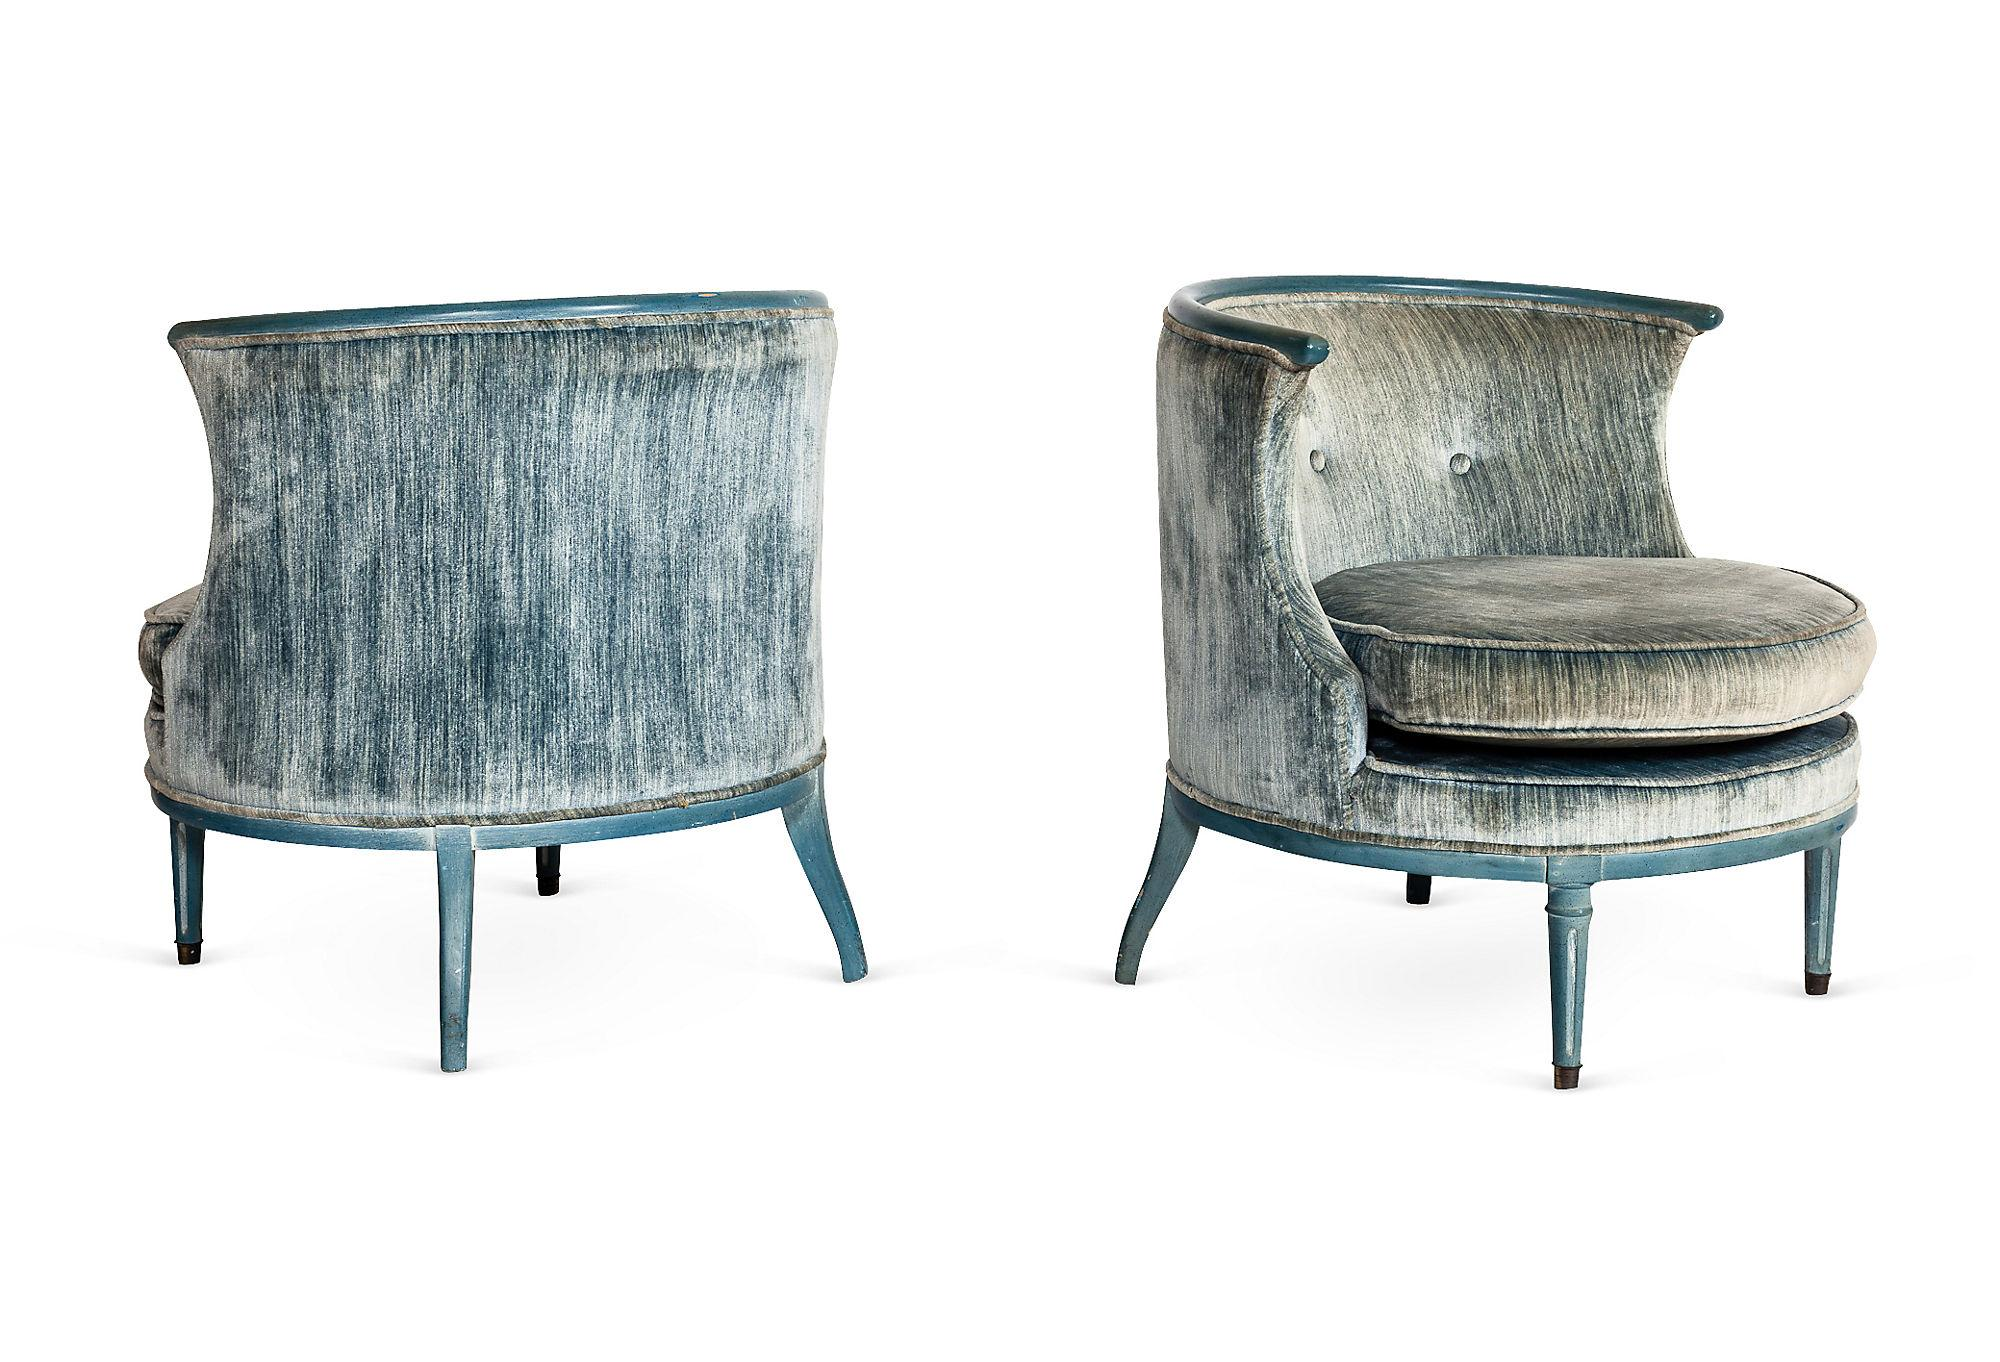 One Kings Lane - Kelly Wearstler - Vintage Blue Circular Chairs, Pair